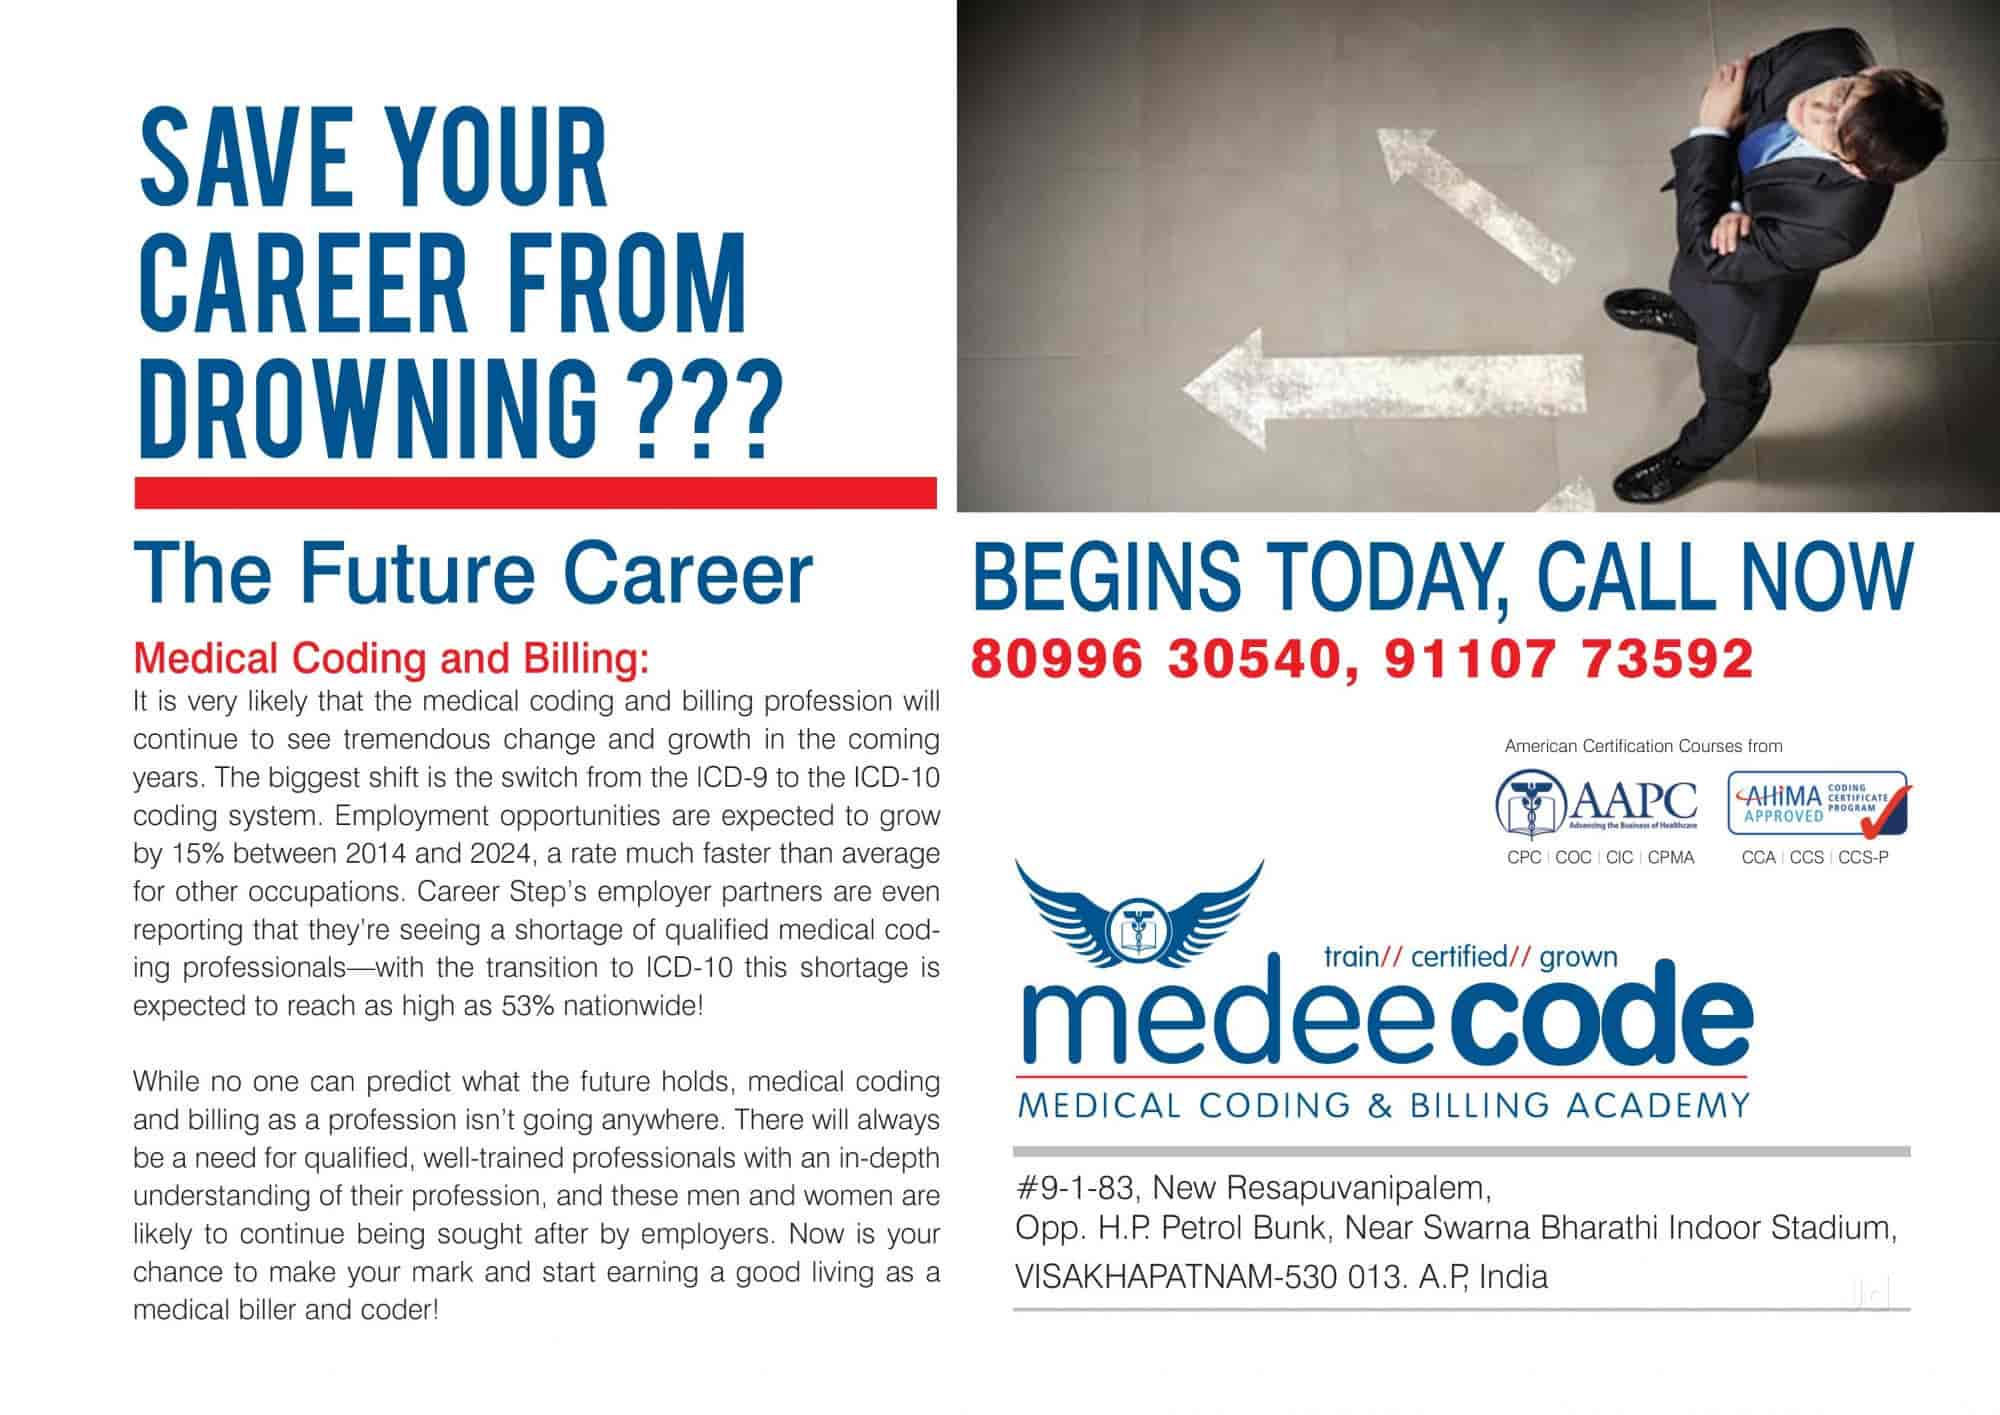 Medeecode medical coding billing academy maddilapalem medeecode medical coding billing academy maddilapalem institutes for medical coding billing in visakhapatnam justdial 1betcityfo Gallery